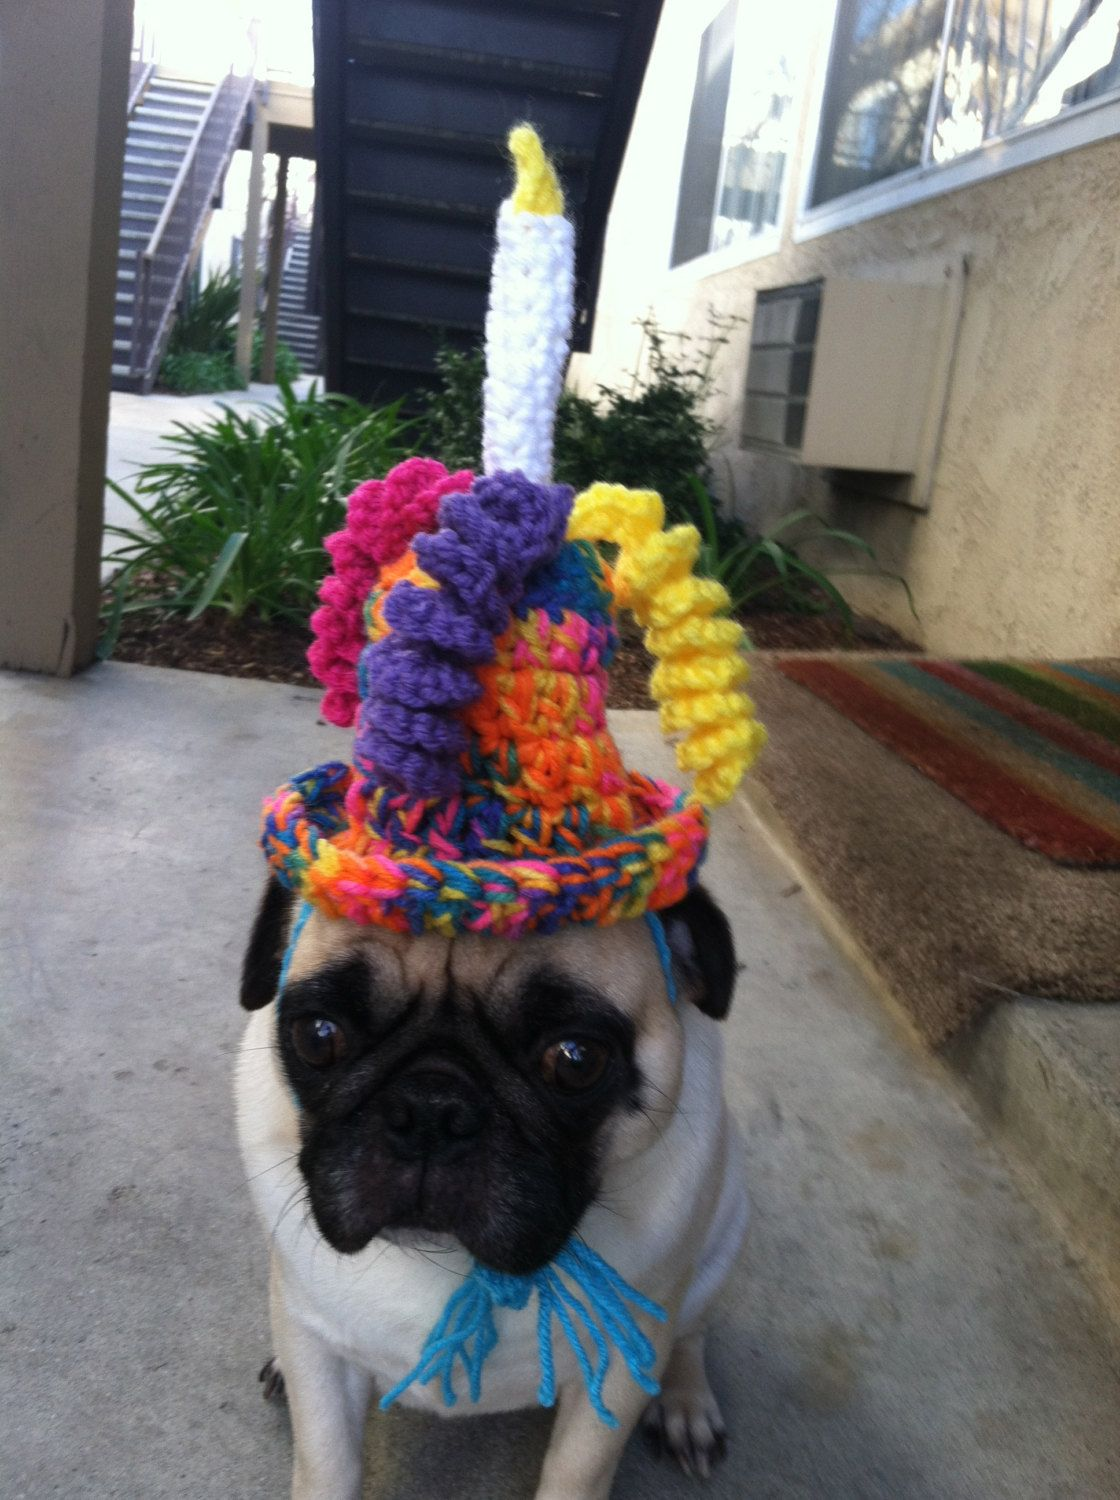 Hats For Pugs Birthday Hat Dog Novelty Cute Dogs Crochet Handmade 1600 Via Etsy